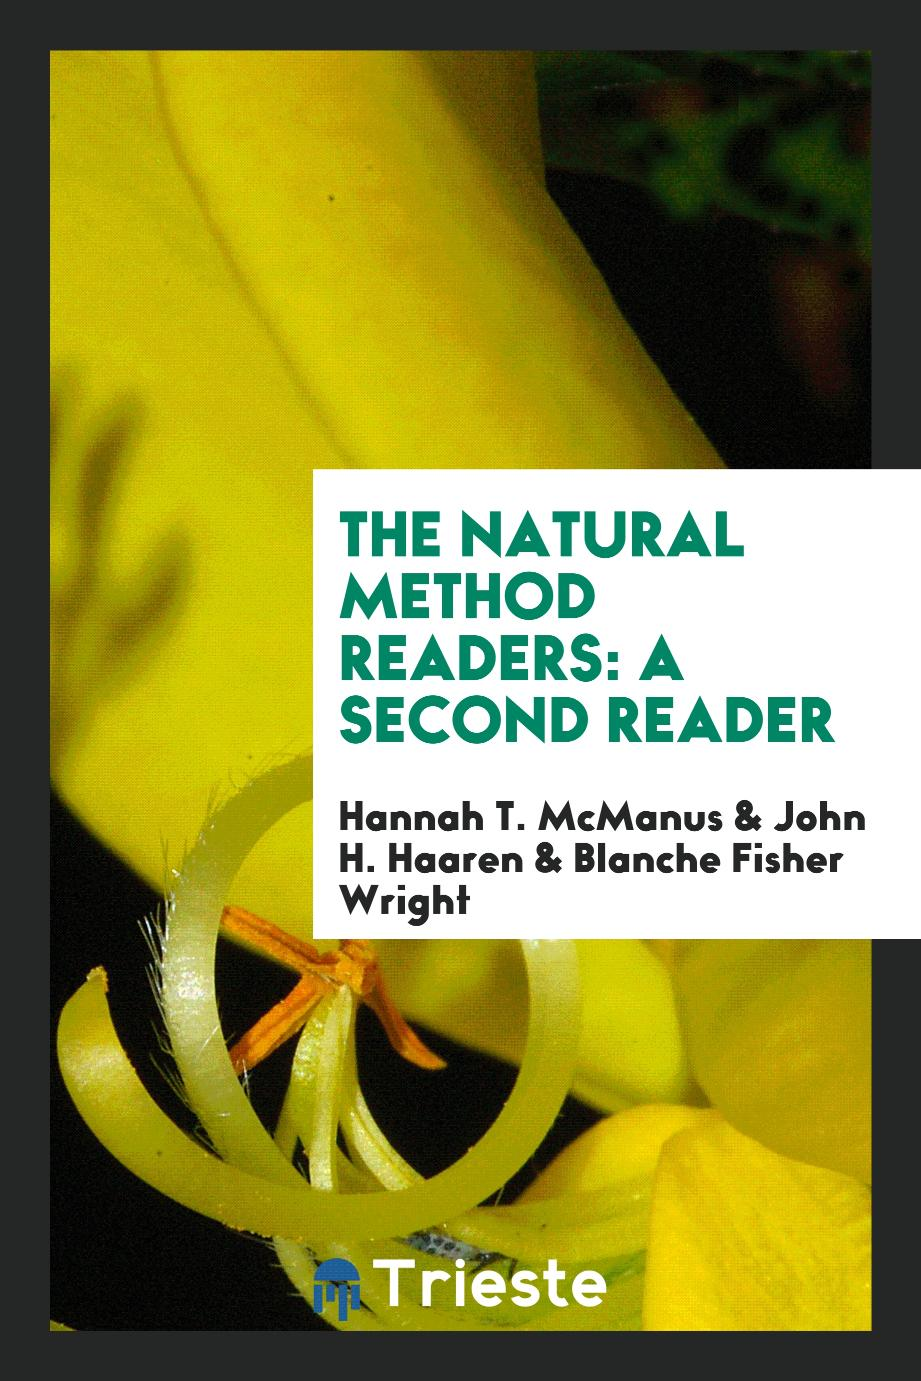 The Natural Method Readers: A Second Reader